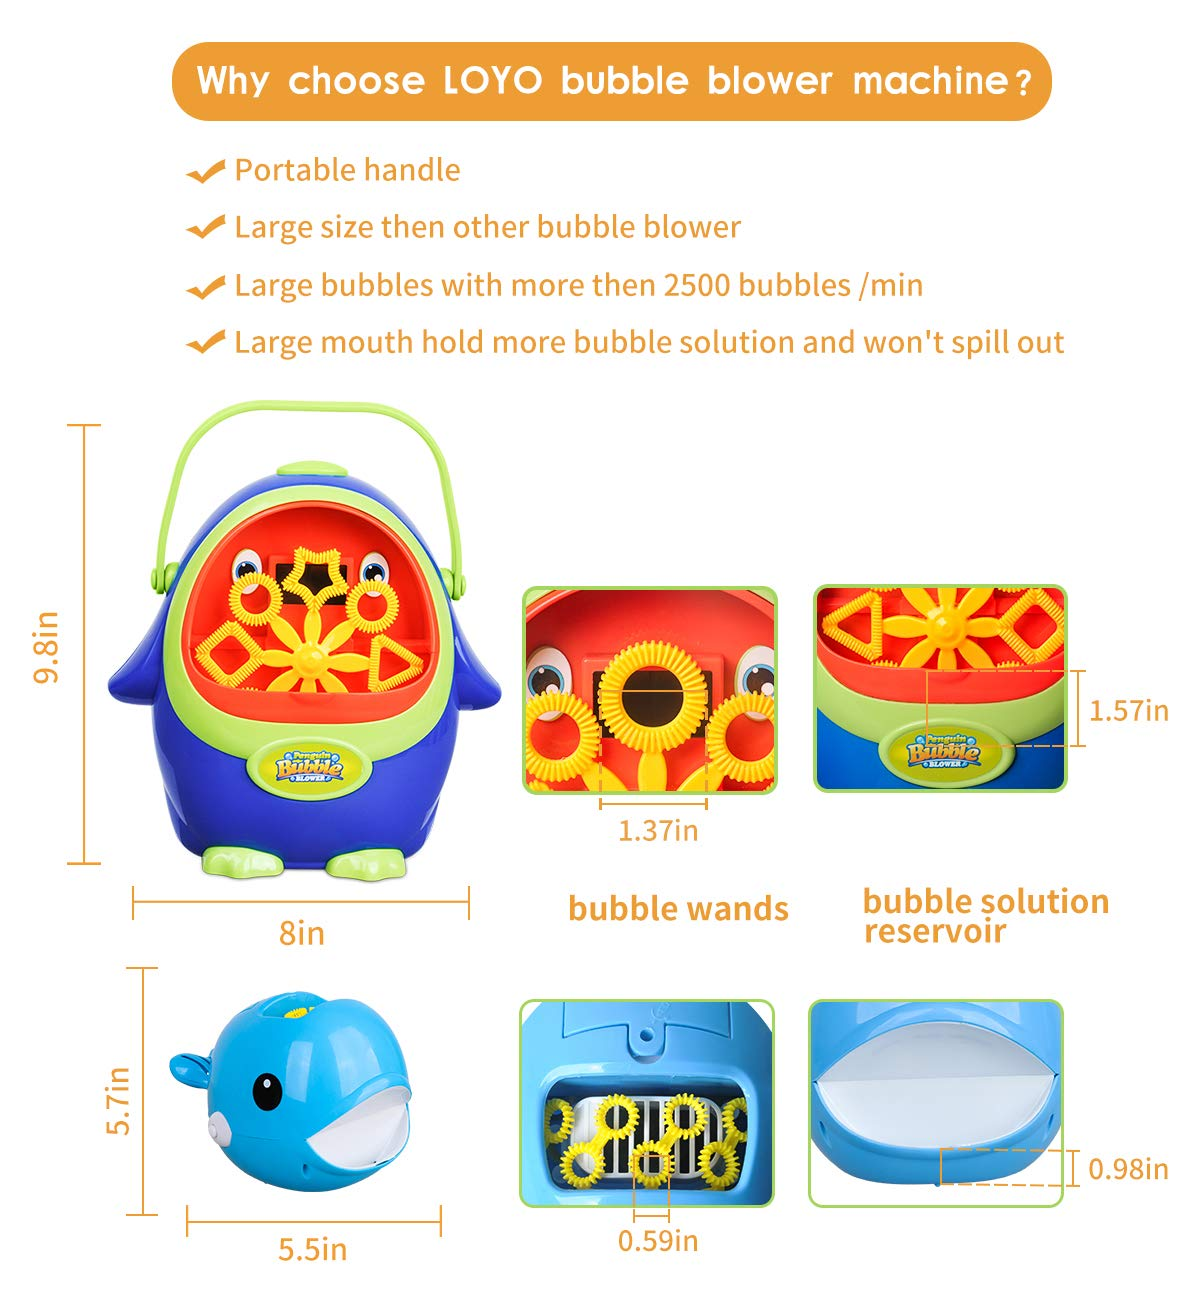 Bubble Machine - Automatic Bubble Blower with Bubble Solution for Kids Toddlers, Portable Bubble Maker with Bubbles Solution for Party, Wedding, Outdoor and Indoor Use, Battery Operated, Penguin Shape by LOYO (Image #5)